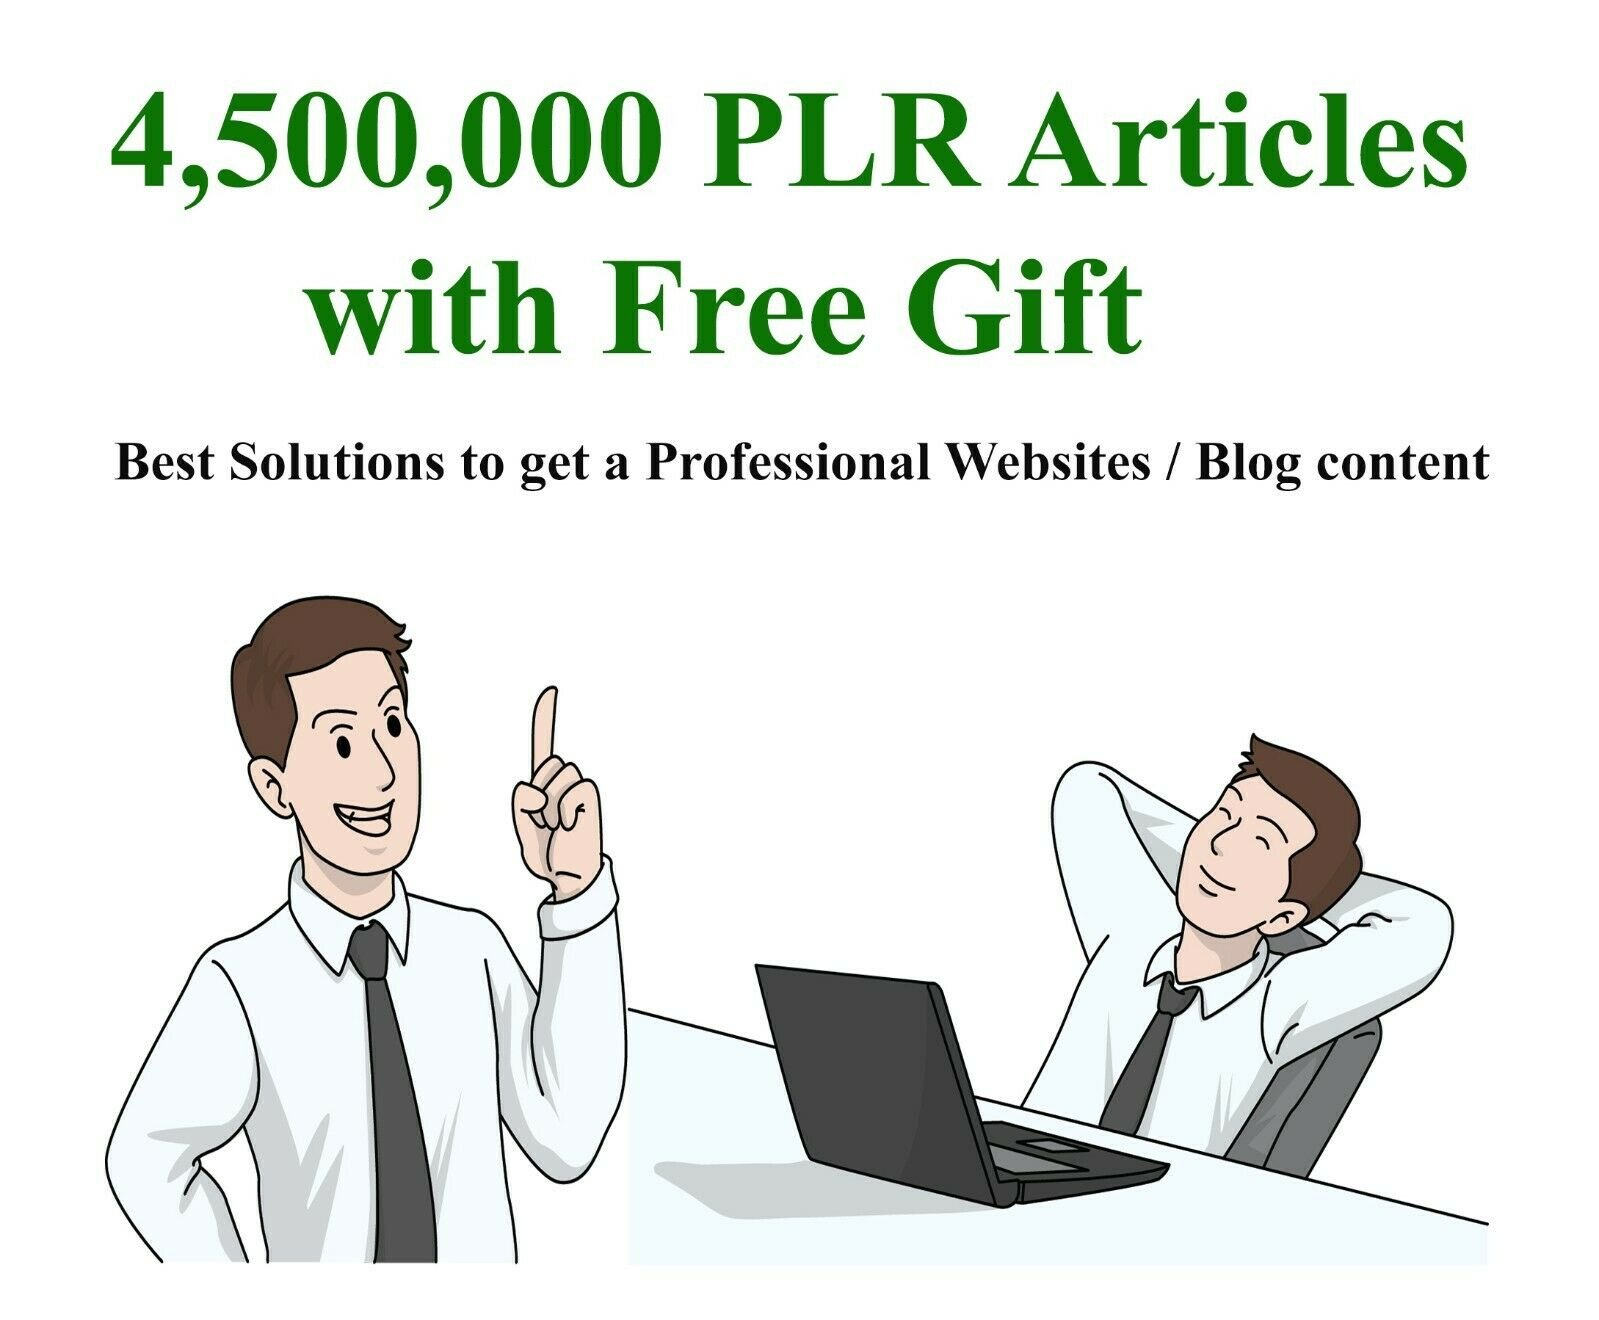 Massive 4,500,000 Updated PLR Articles Collection for Professional Websites/Blog